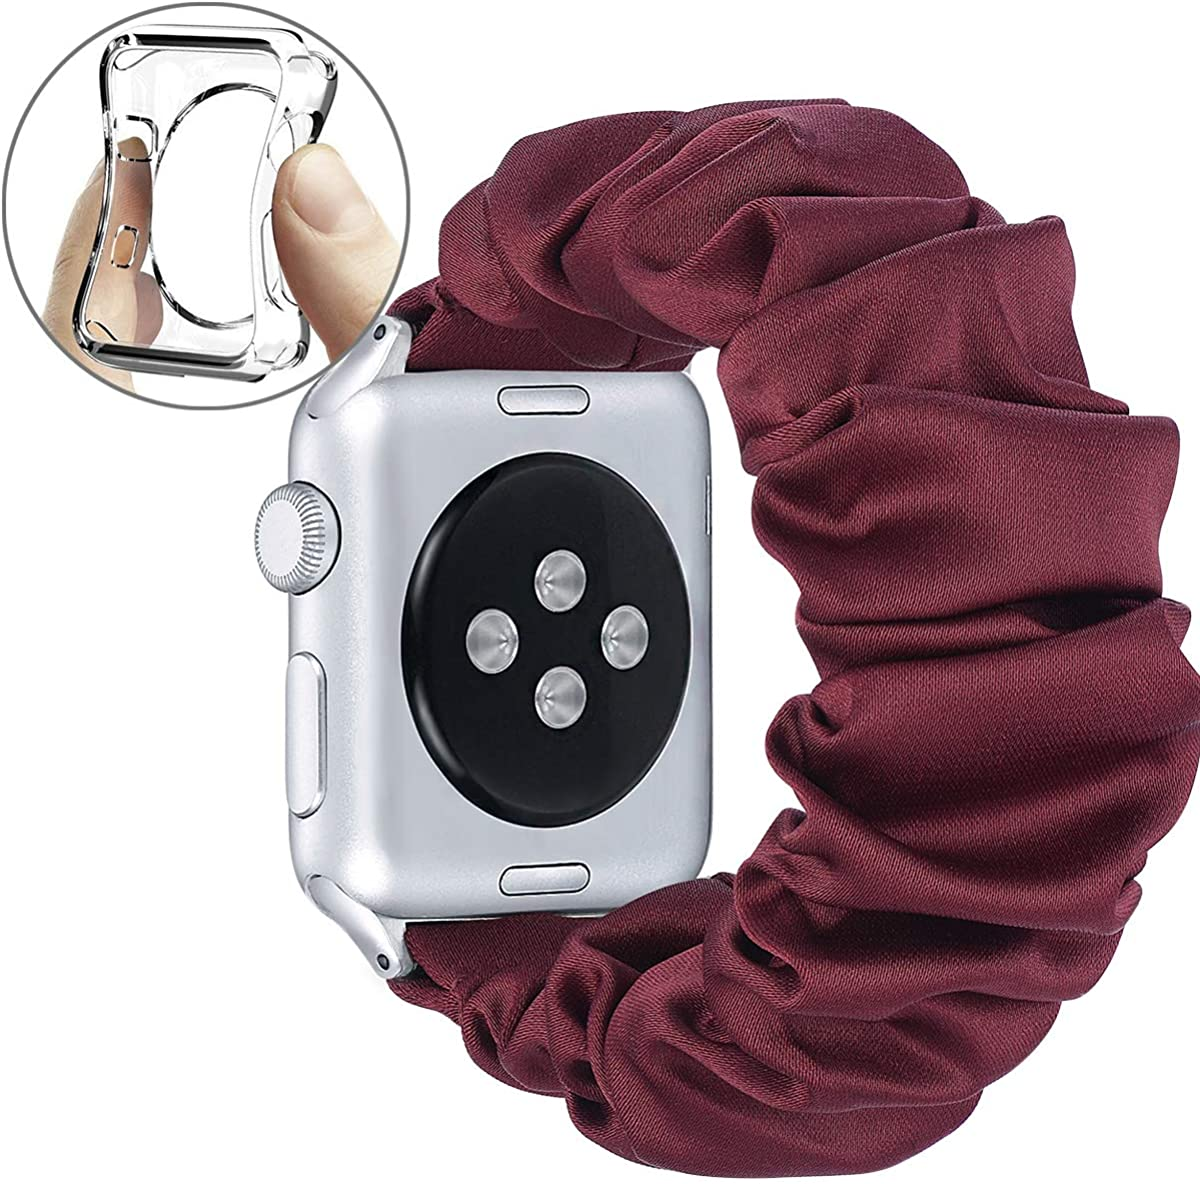 fastgo Compatible with Apple Watch Band Scrunchie 38mm/40mm Women Girls Gift Elastic Bracelet Stretchy Soft Fabric Strap Replacement Wristbands for Iwatch SE Series 6/5/4 3/2/1 42mm/44mm Accessories